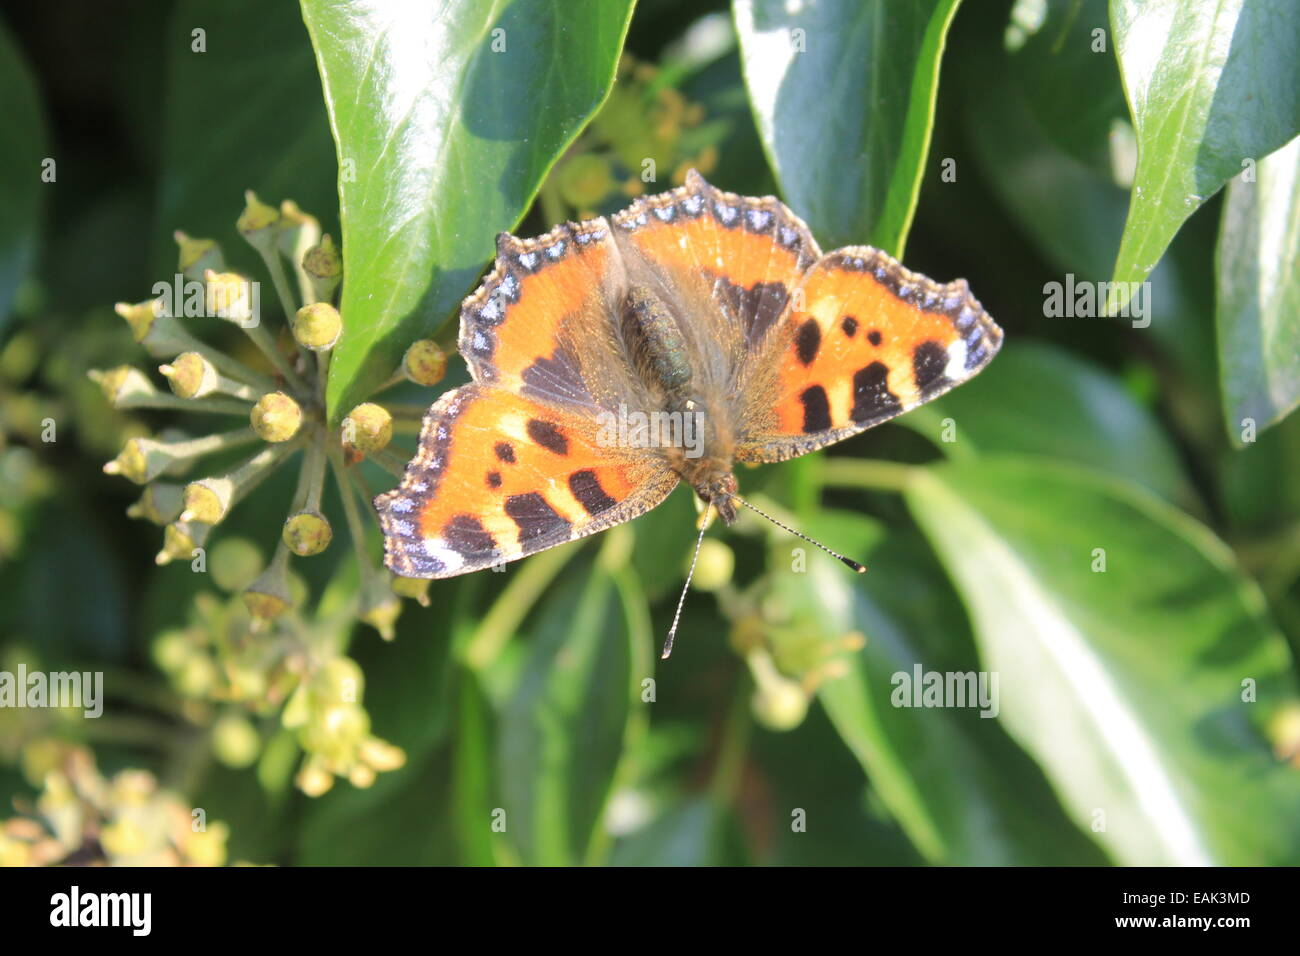 Small Tortoiseshell butterfly on ivy - Stock Image